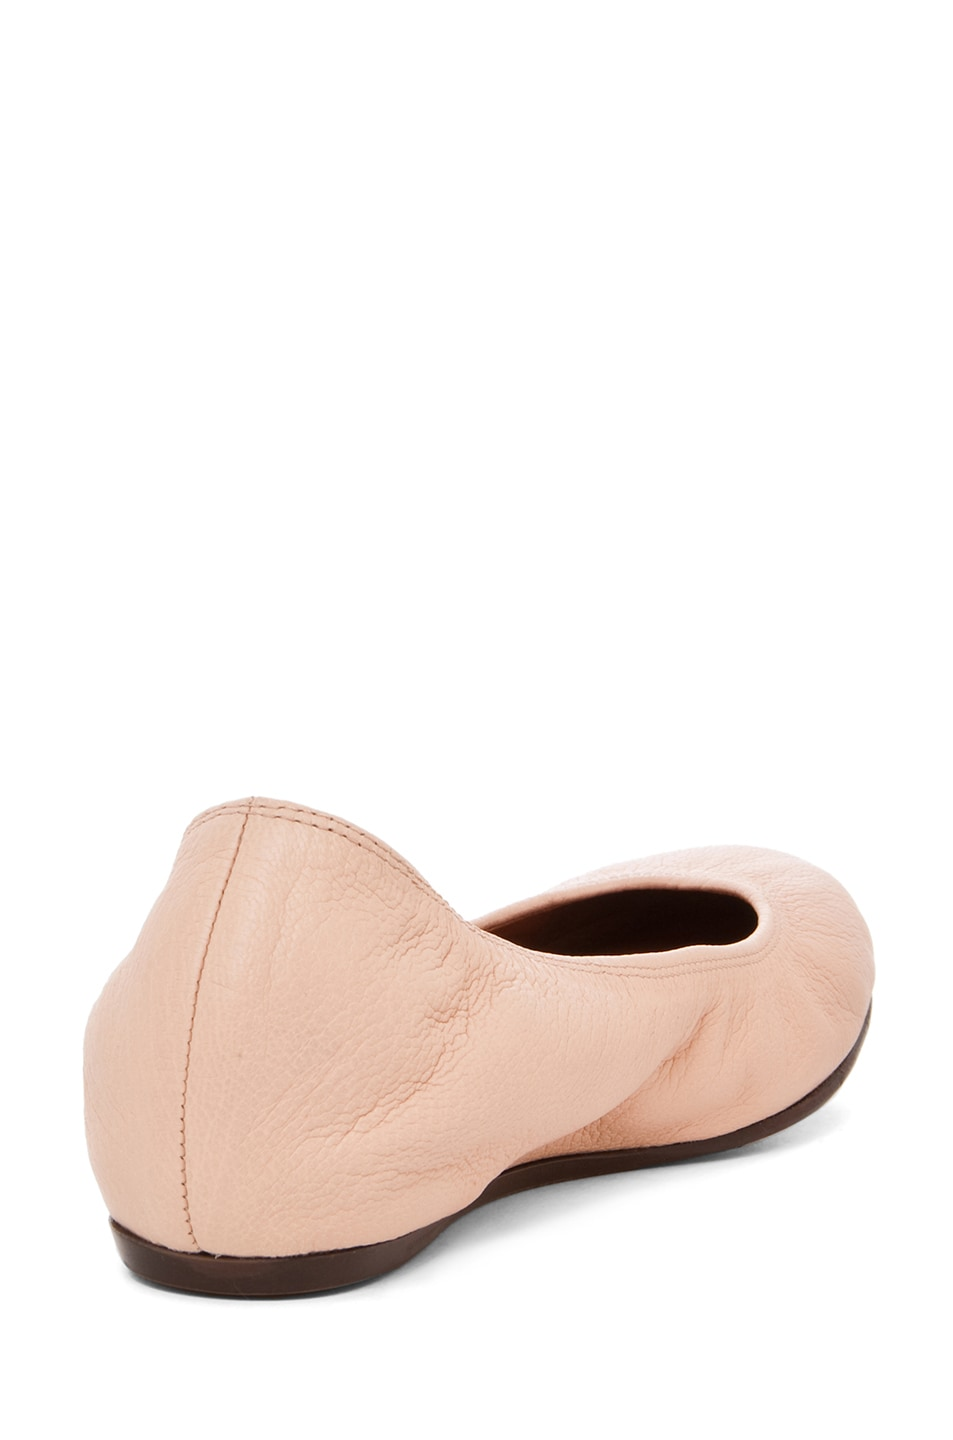 Image 3 of Lanvin Classic Ballerina Flat in Light Pink